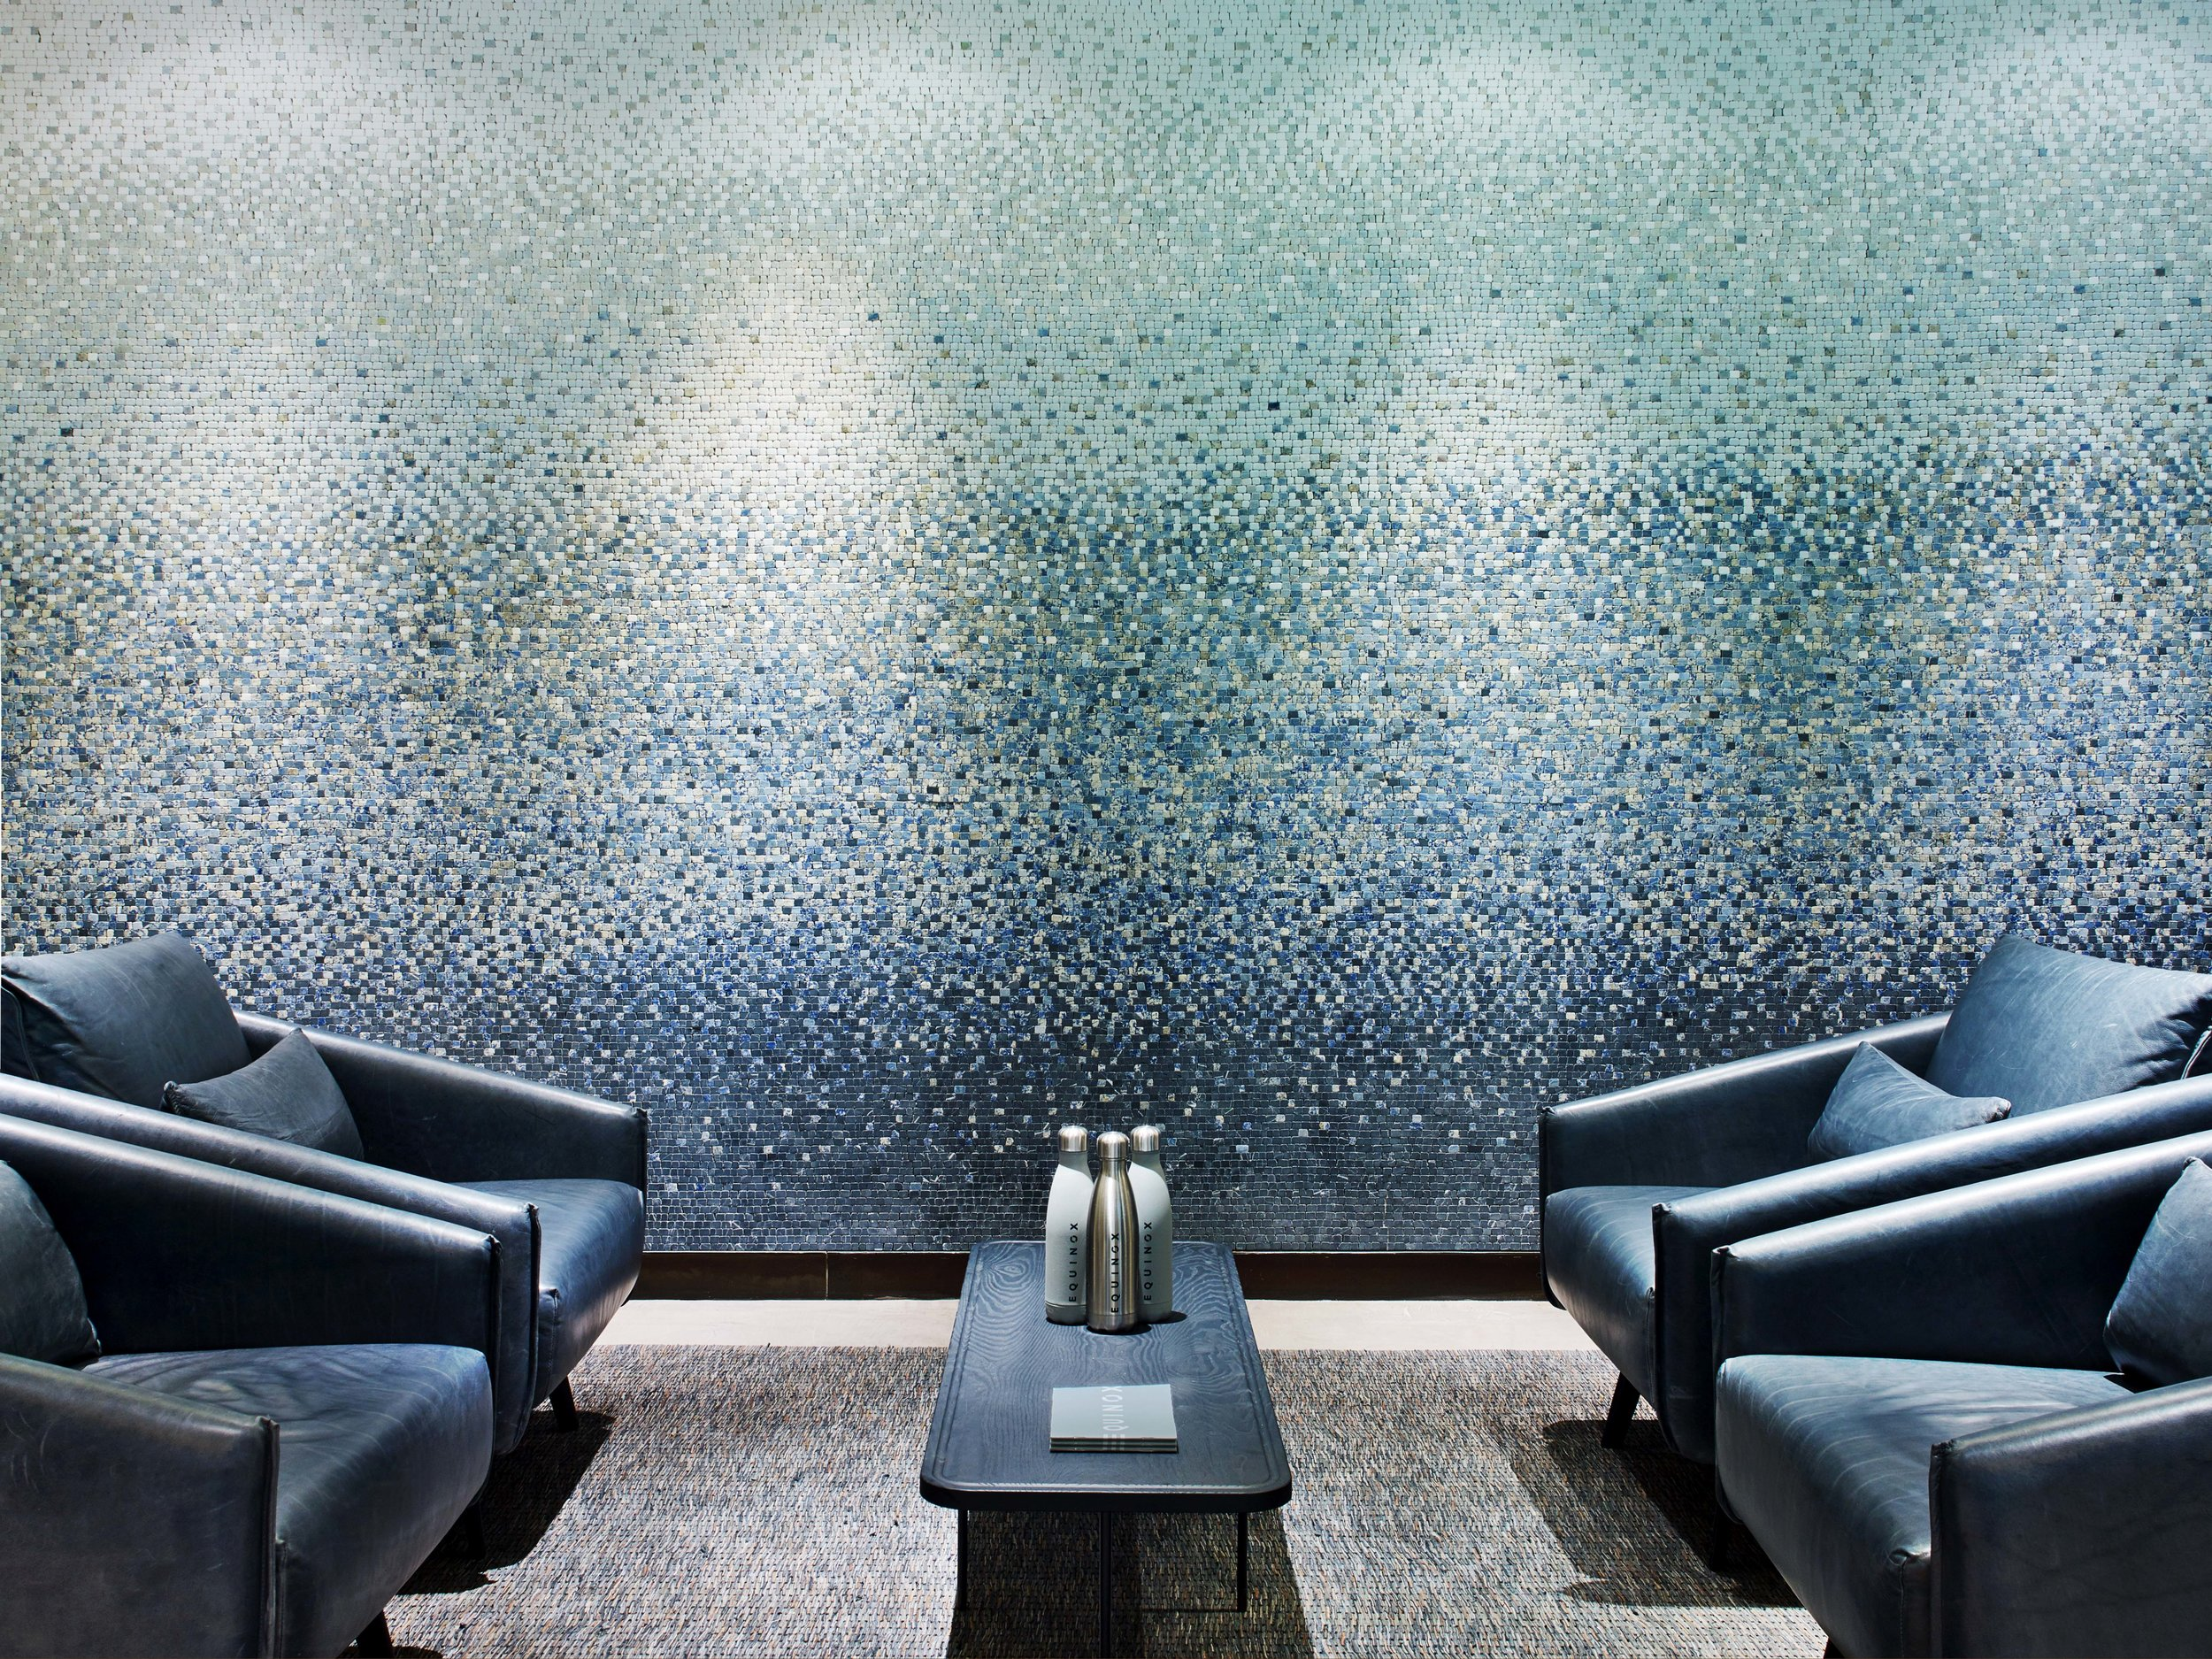 Equinox Dumbo Sitting Area